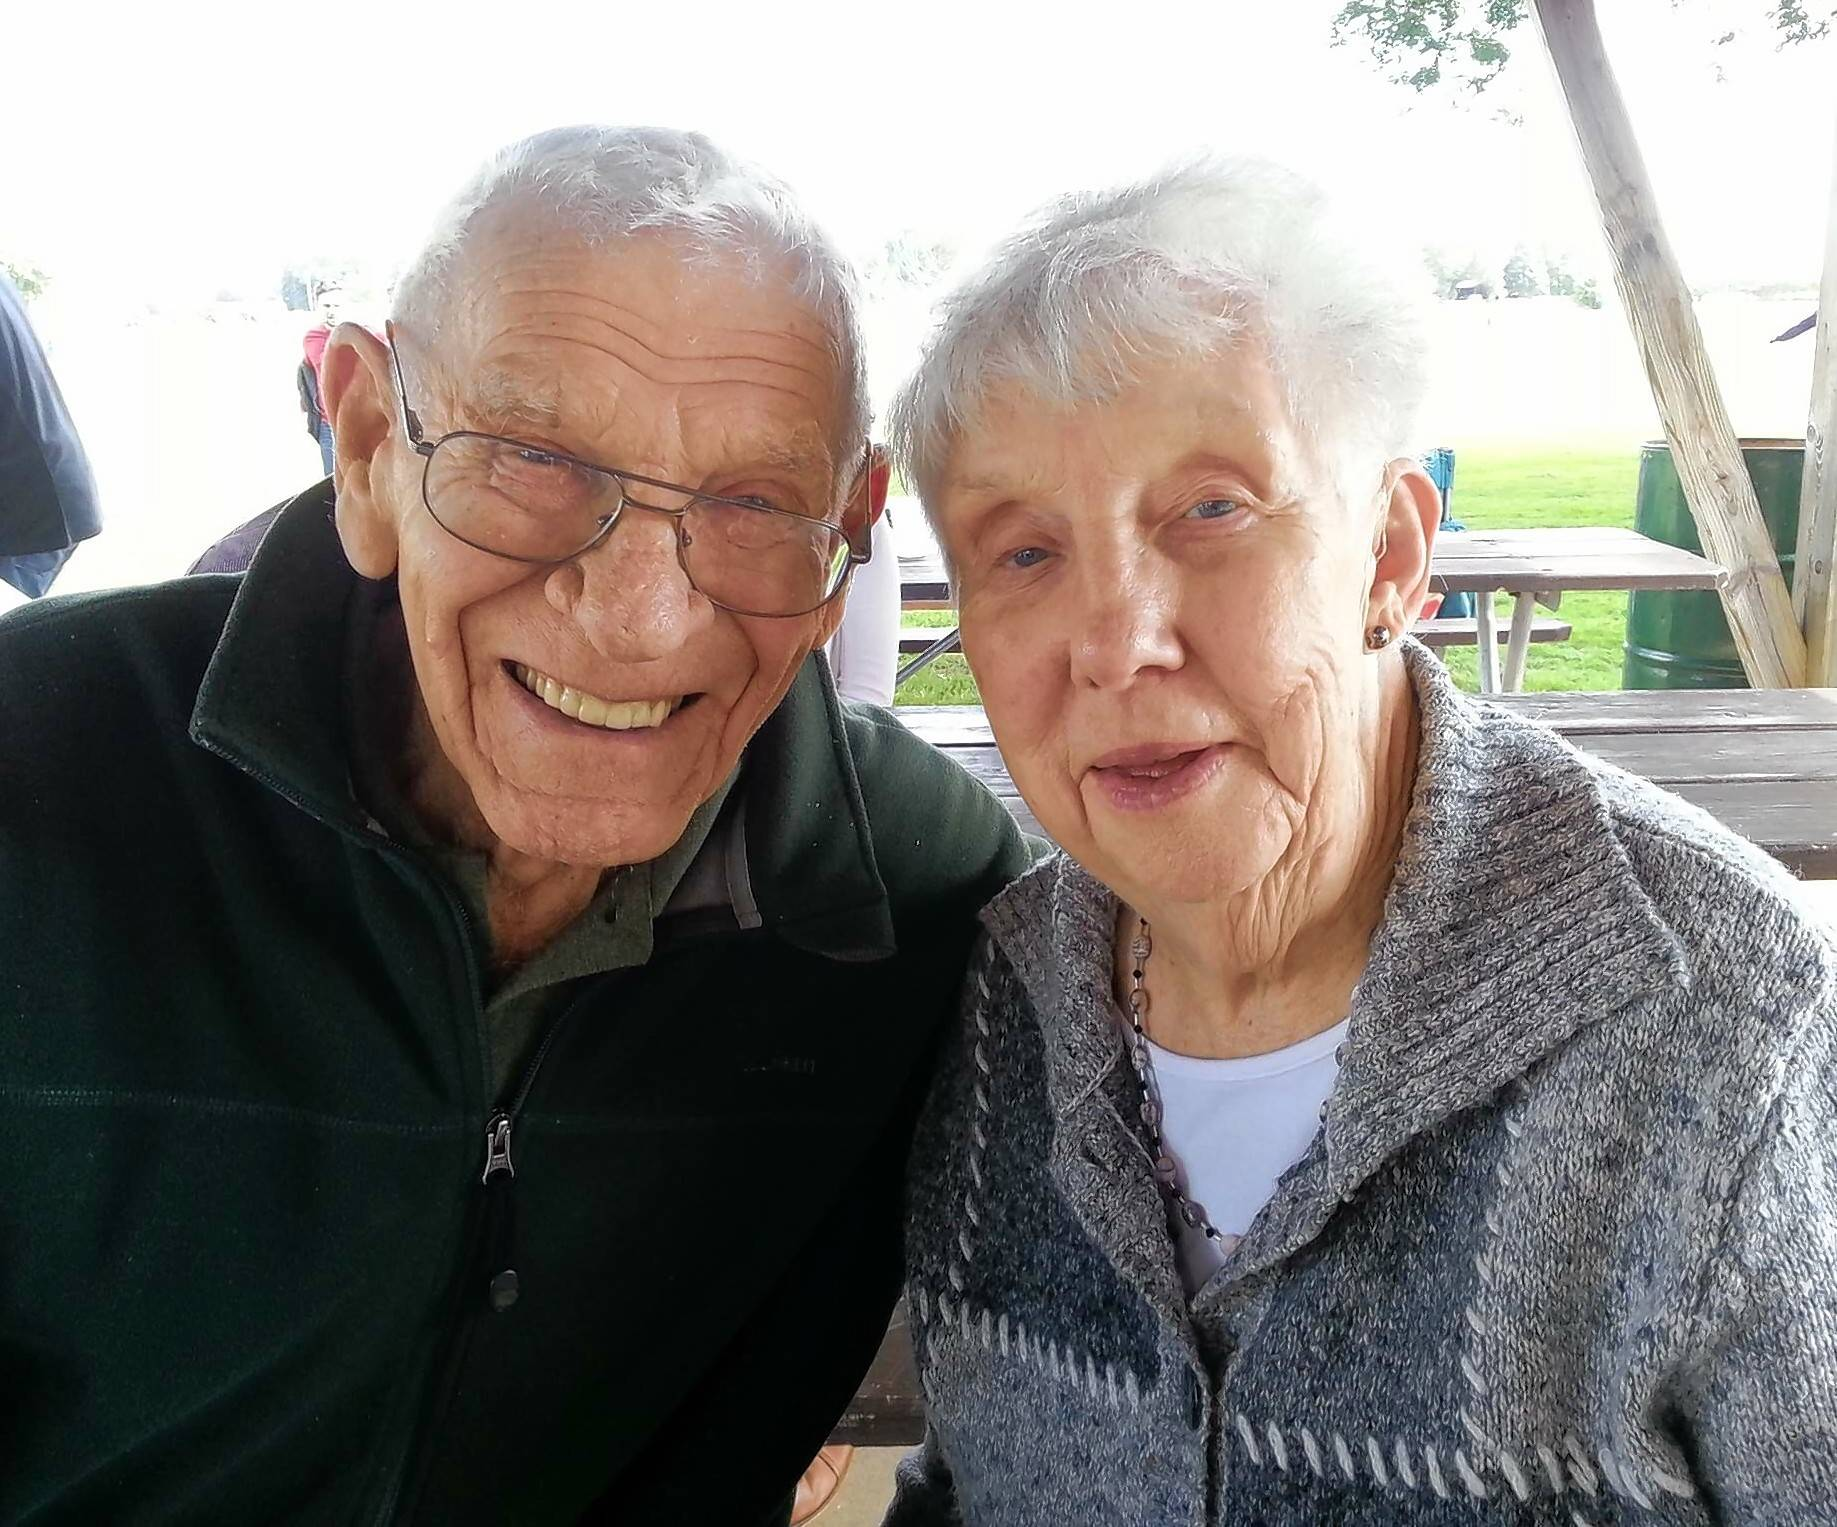 Paul Bergeson, an esteemed former athletic director at St. Charles High School, died Monday at age 91. He is pictured here with Ethyl, his wife of 70 years.